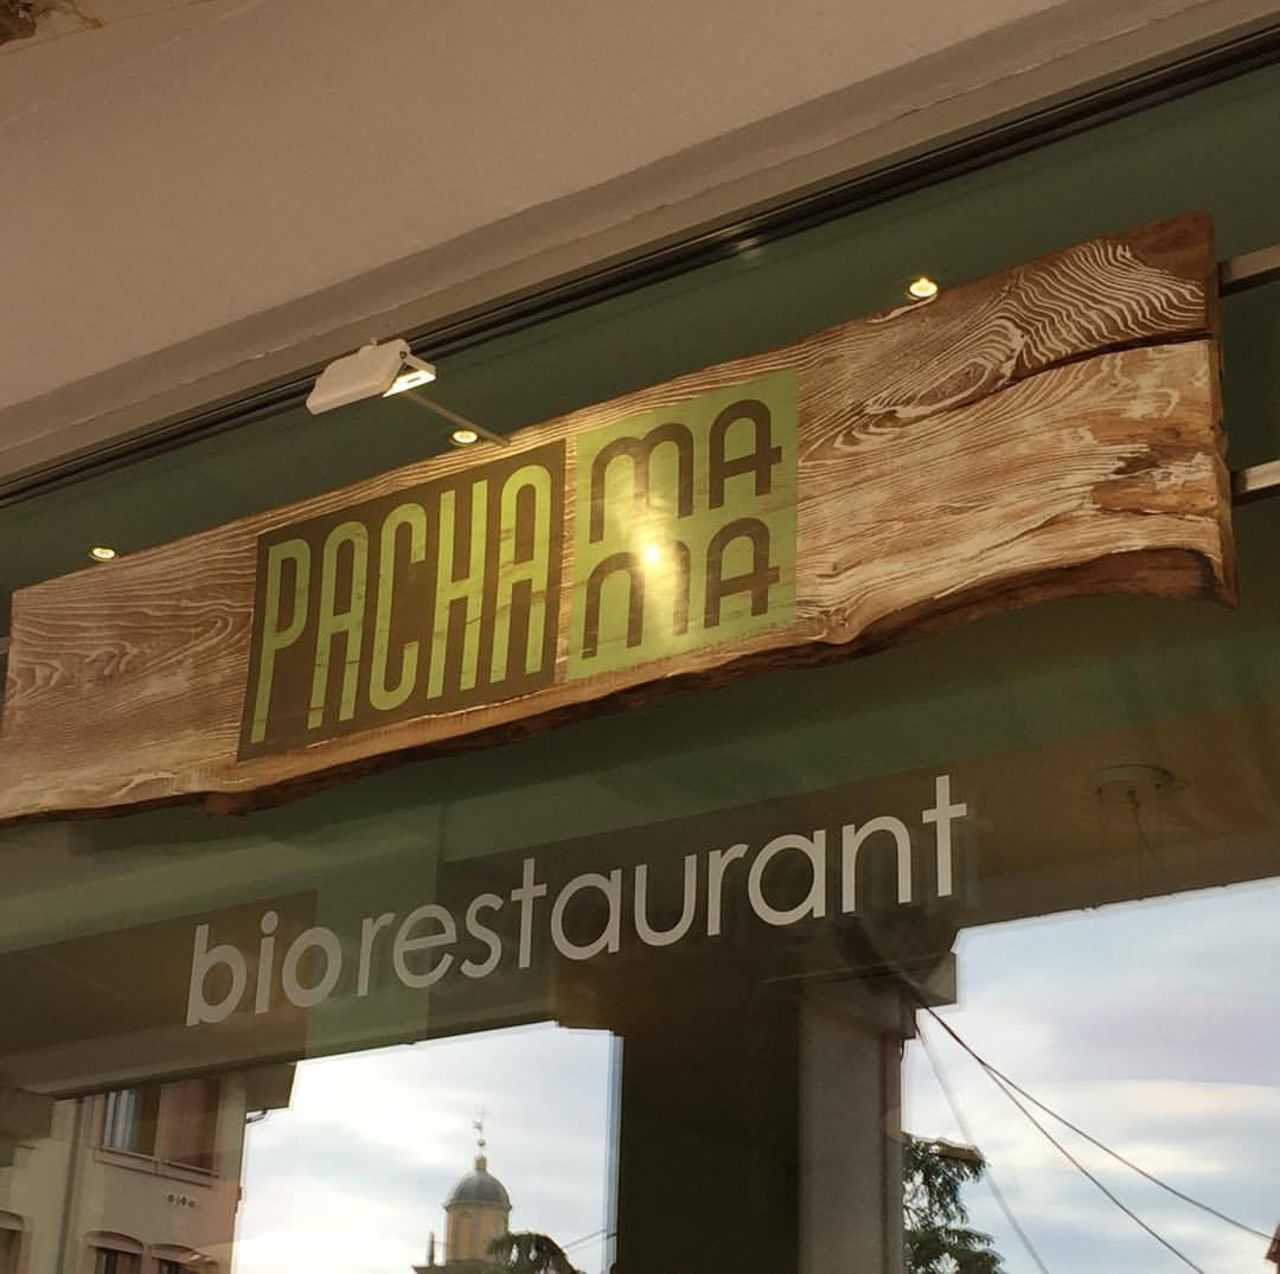 A photo of Pachamama Bio Restaurant